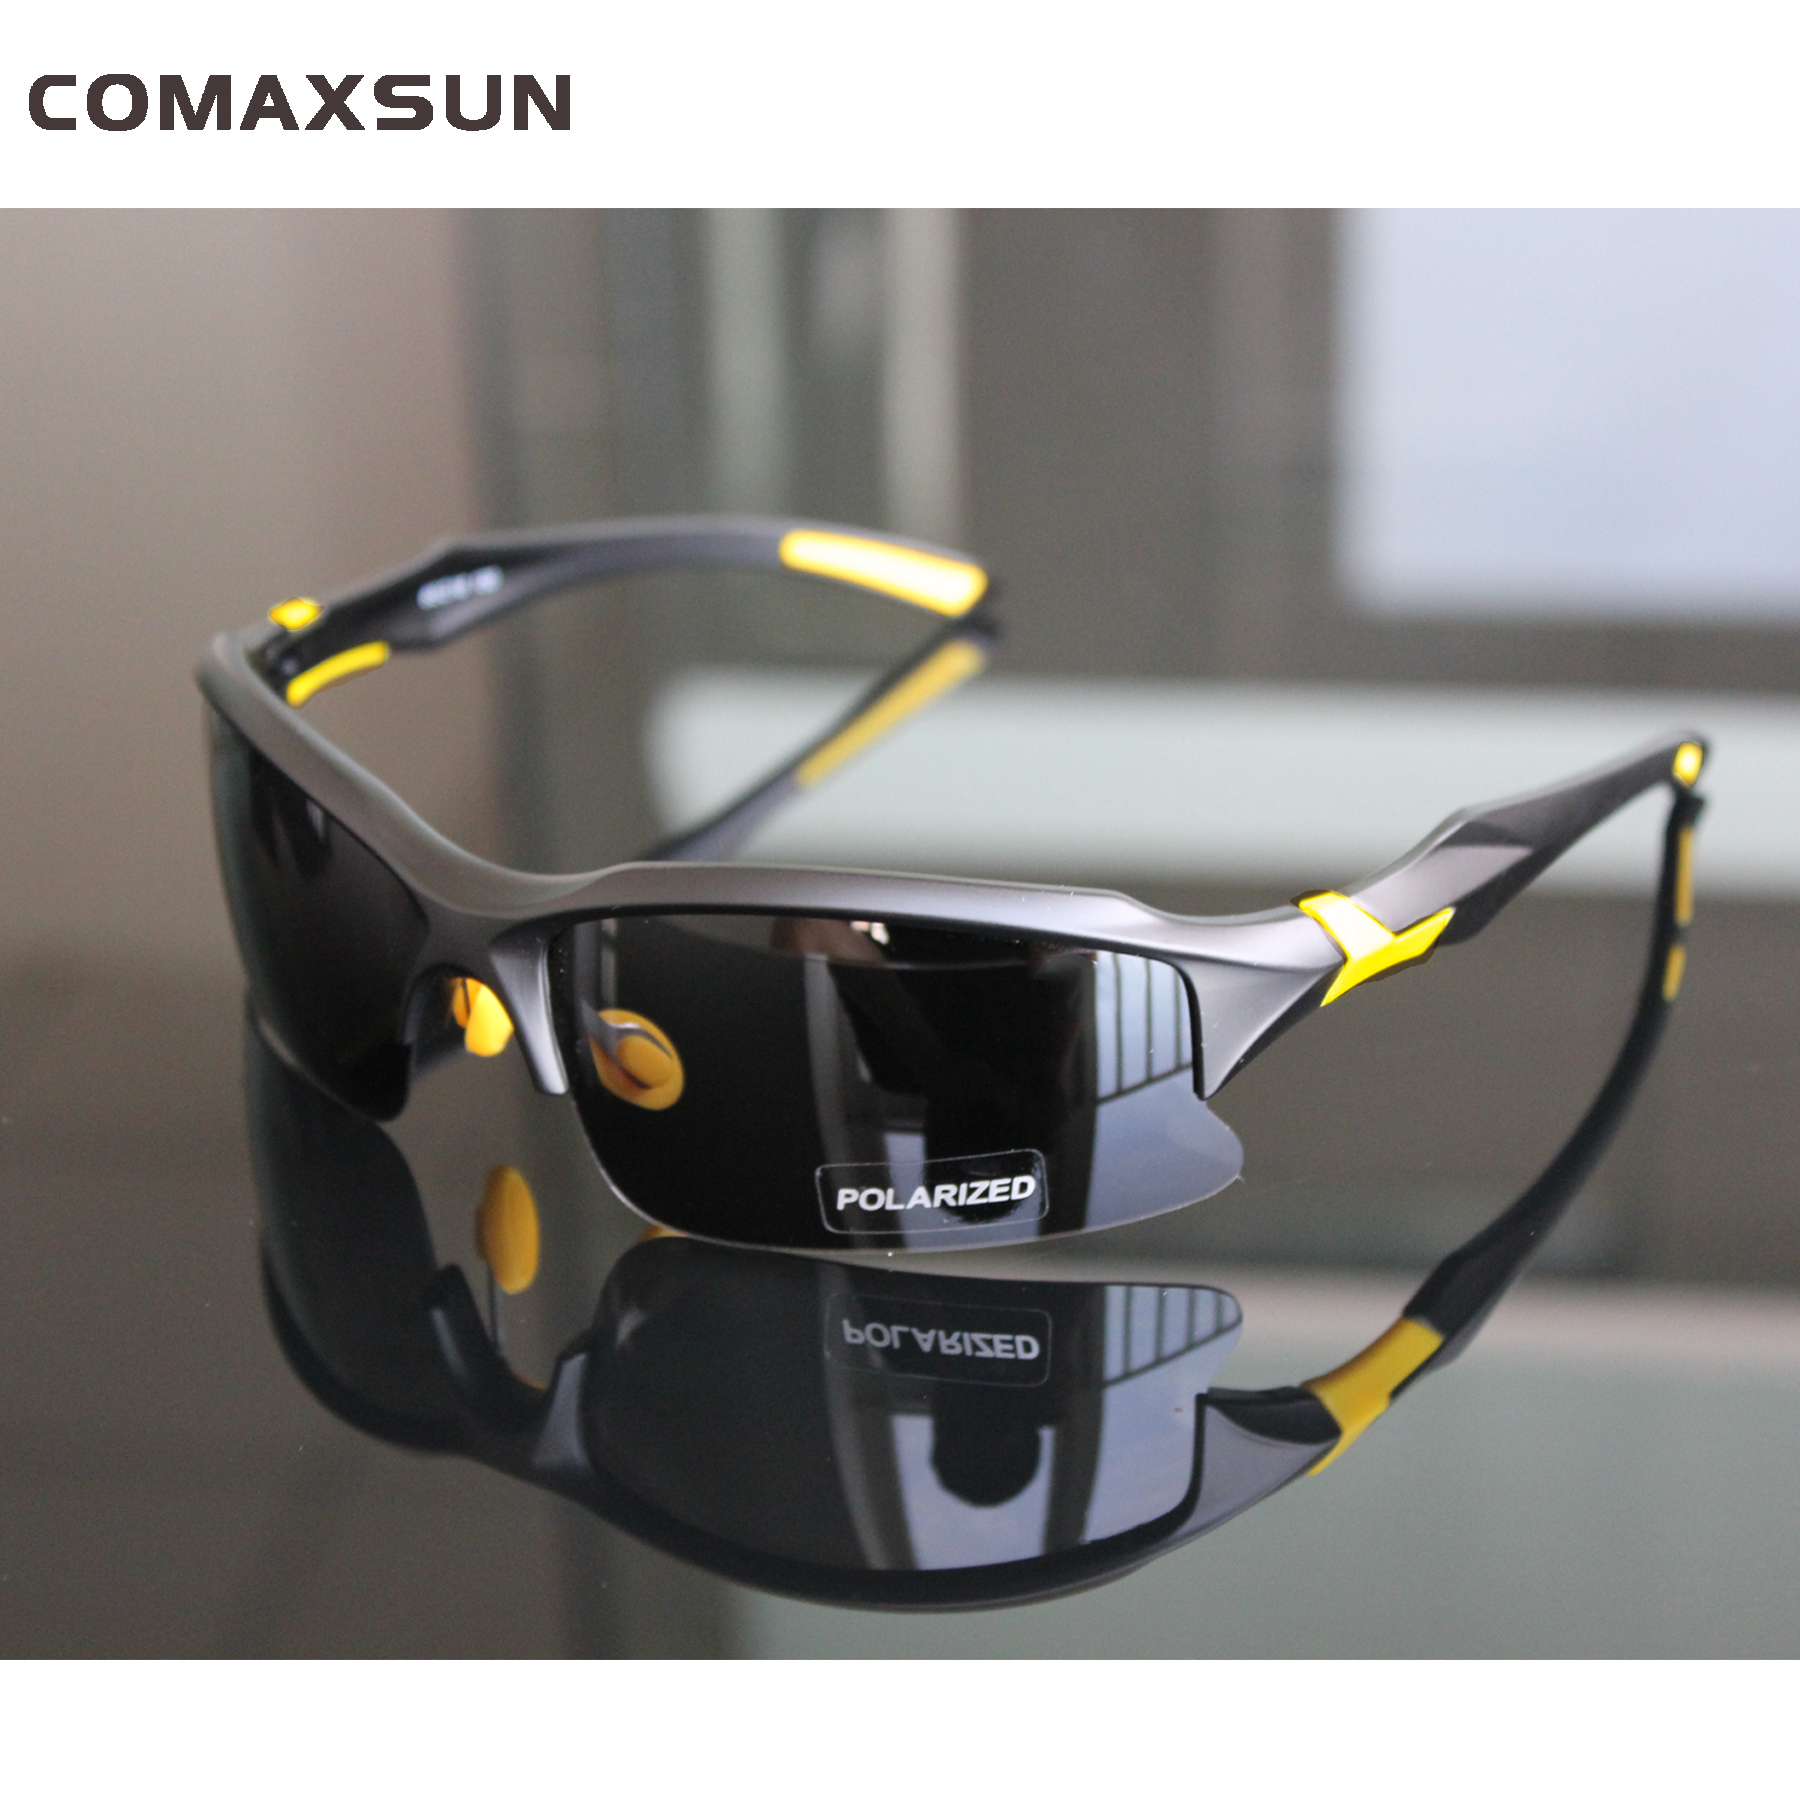 comaxsun Professional Polarized Cycling Glasses Bike Bicycle Goggles Outdoor Sports